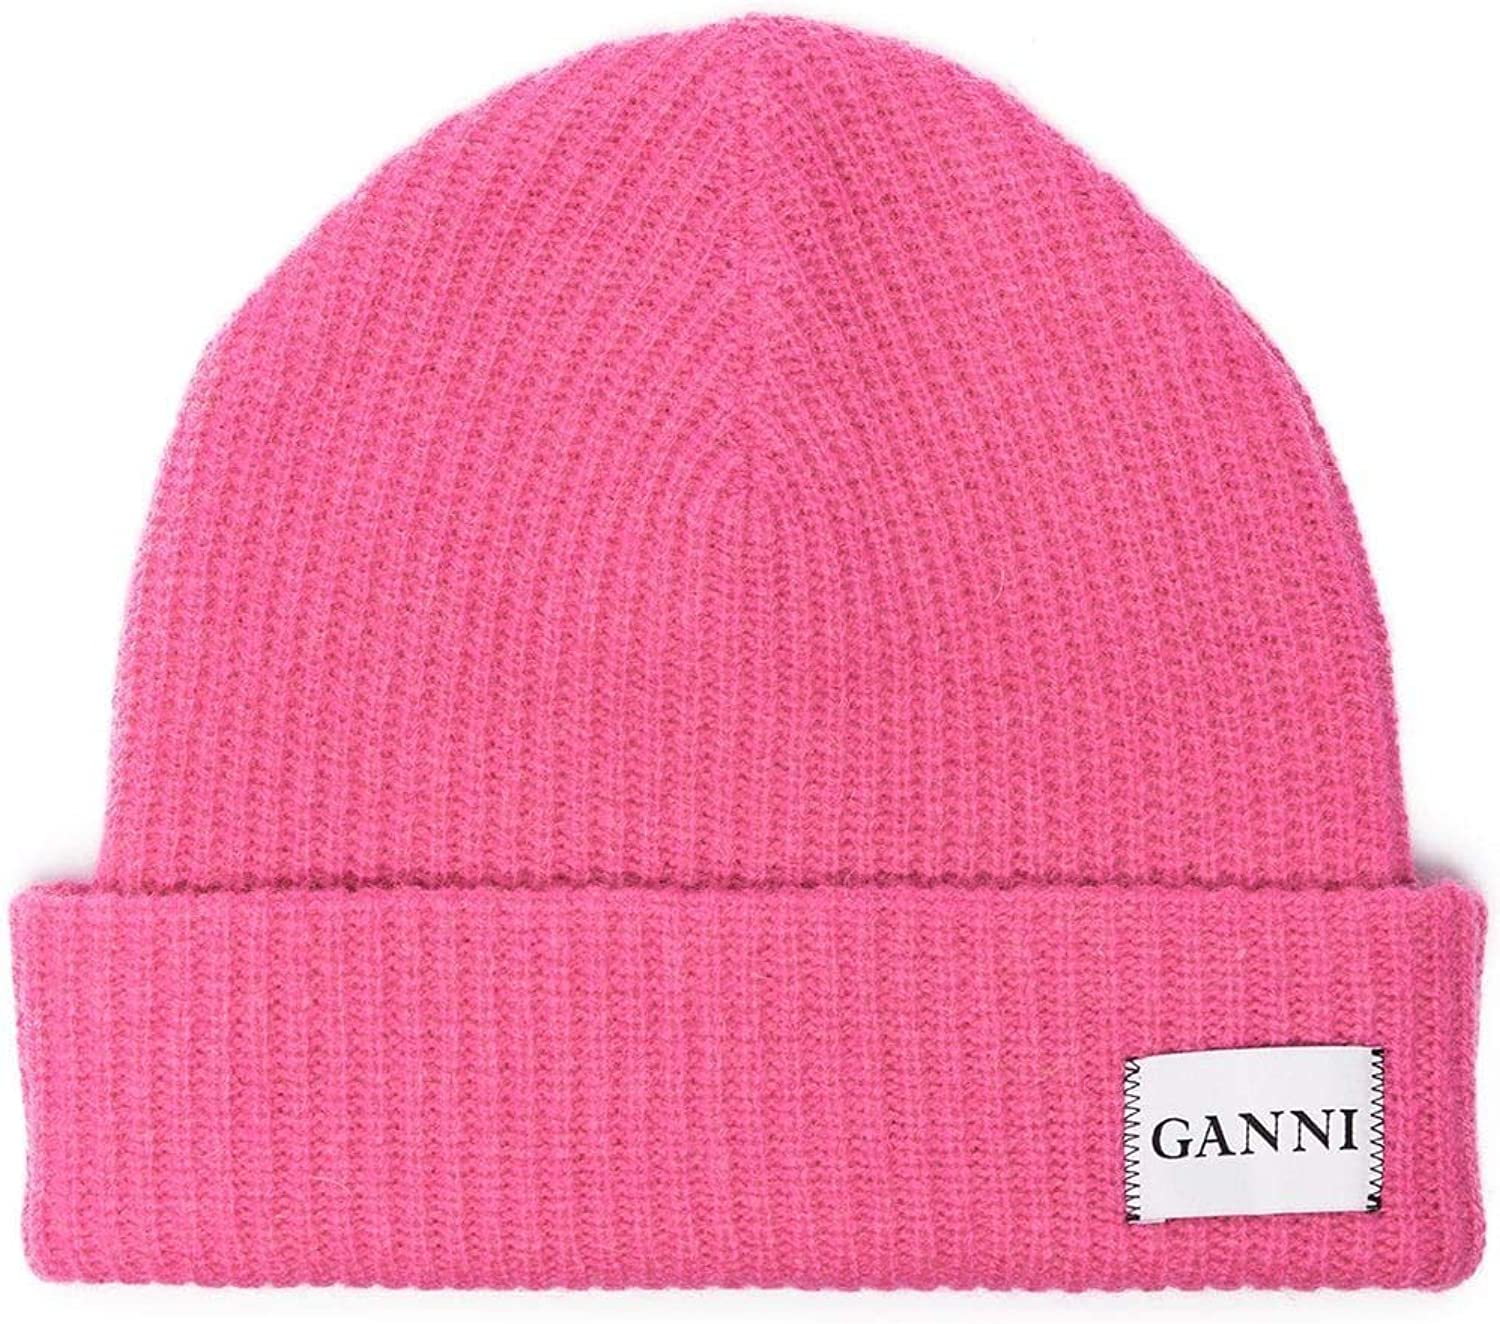 Ganni Women's A1630514 Fuchsia Wool Hat